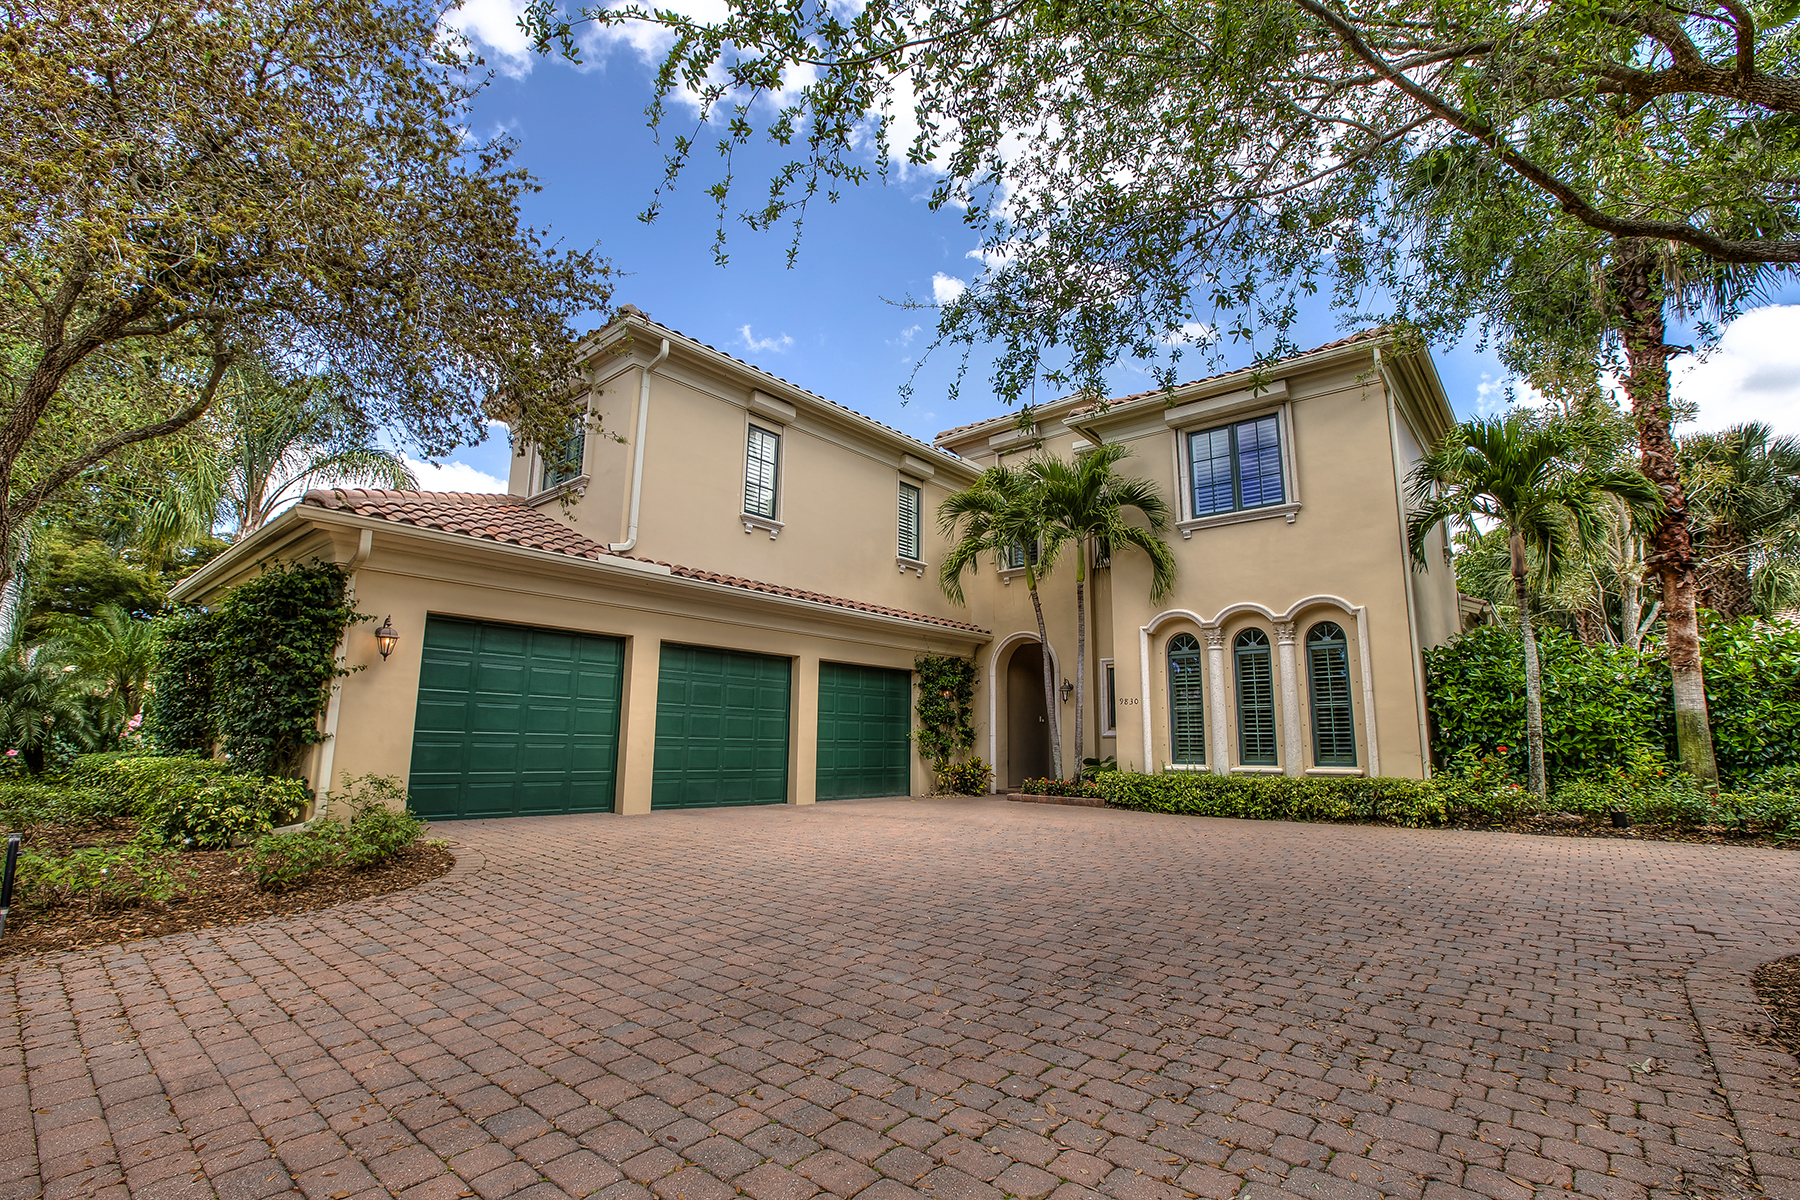 Single Family Home for Sale at SWEET BAY 9830 Bay Meadow Estero, Florida 34135 United States